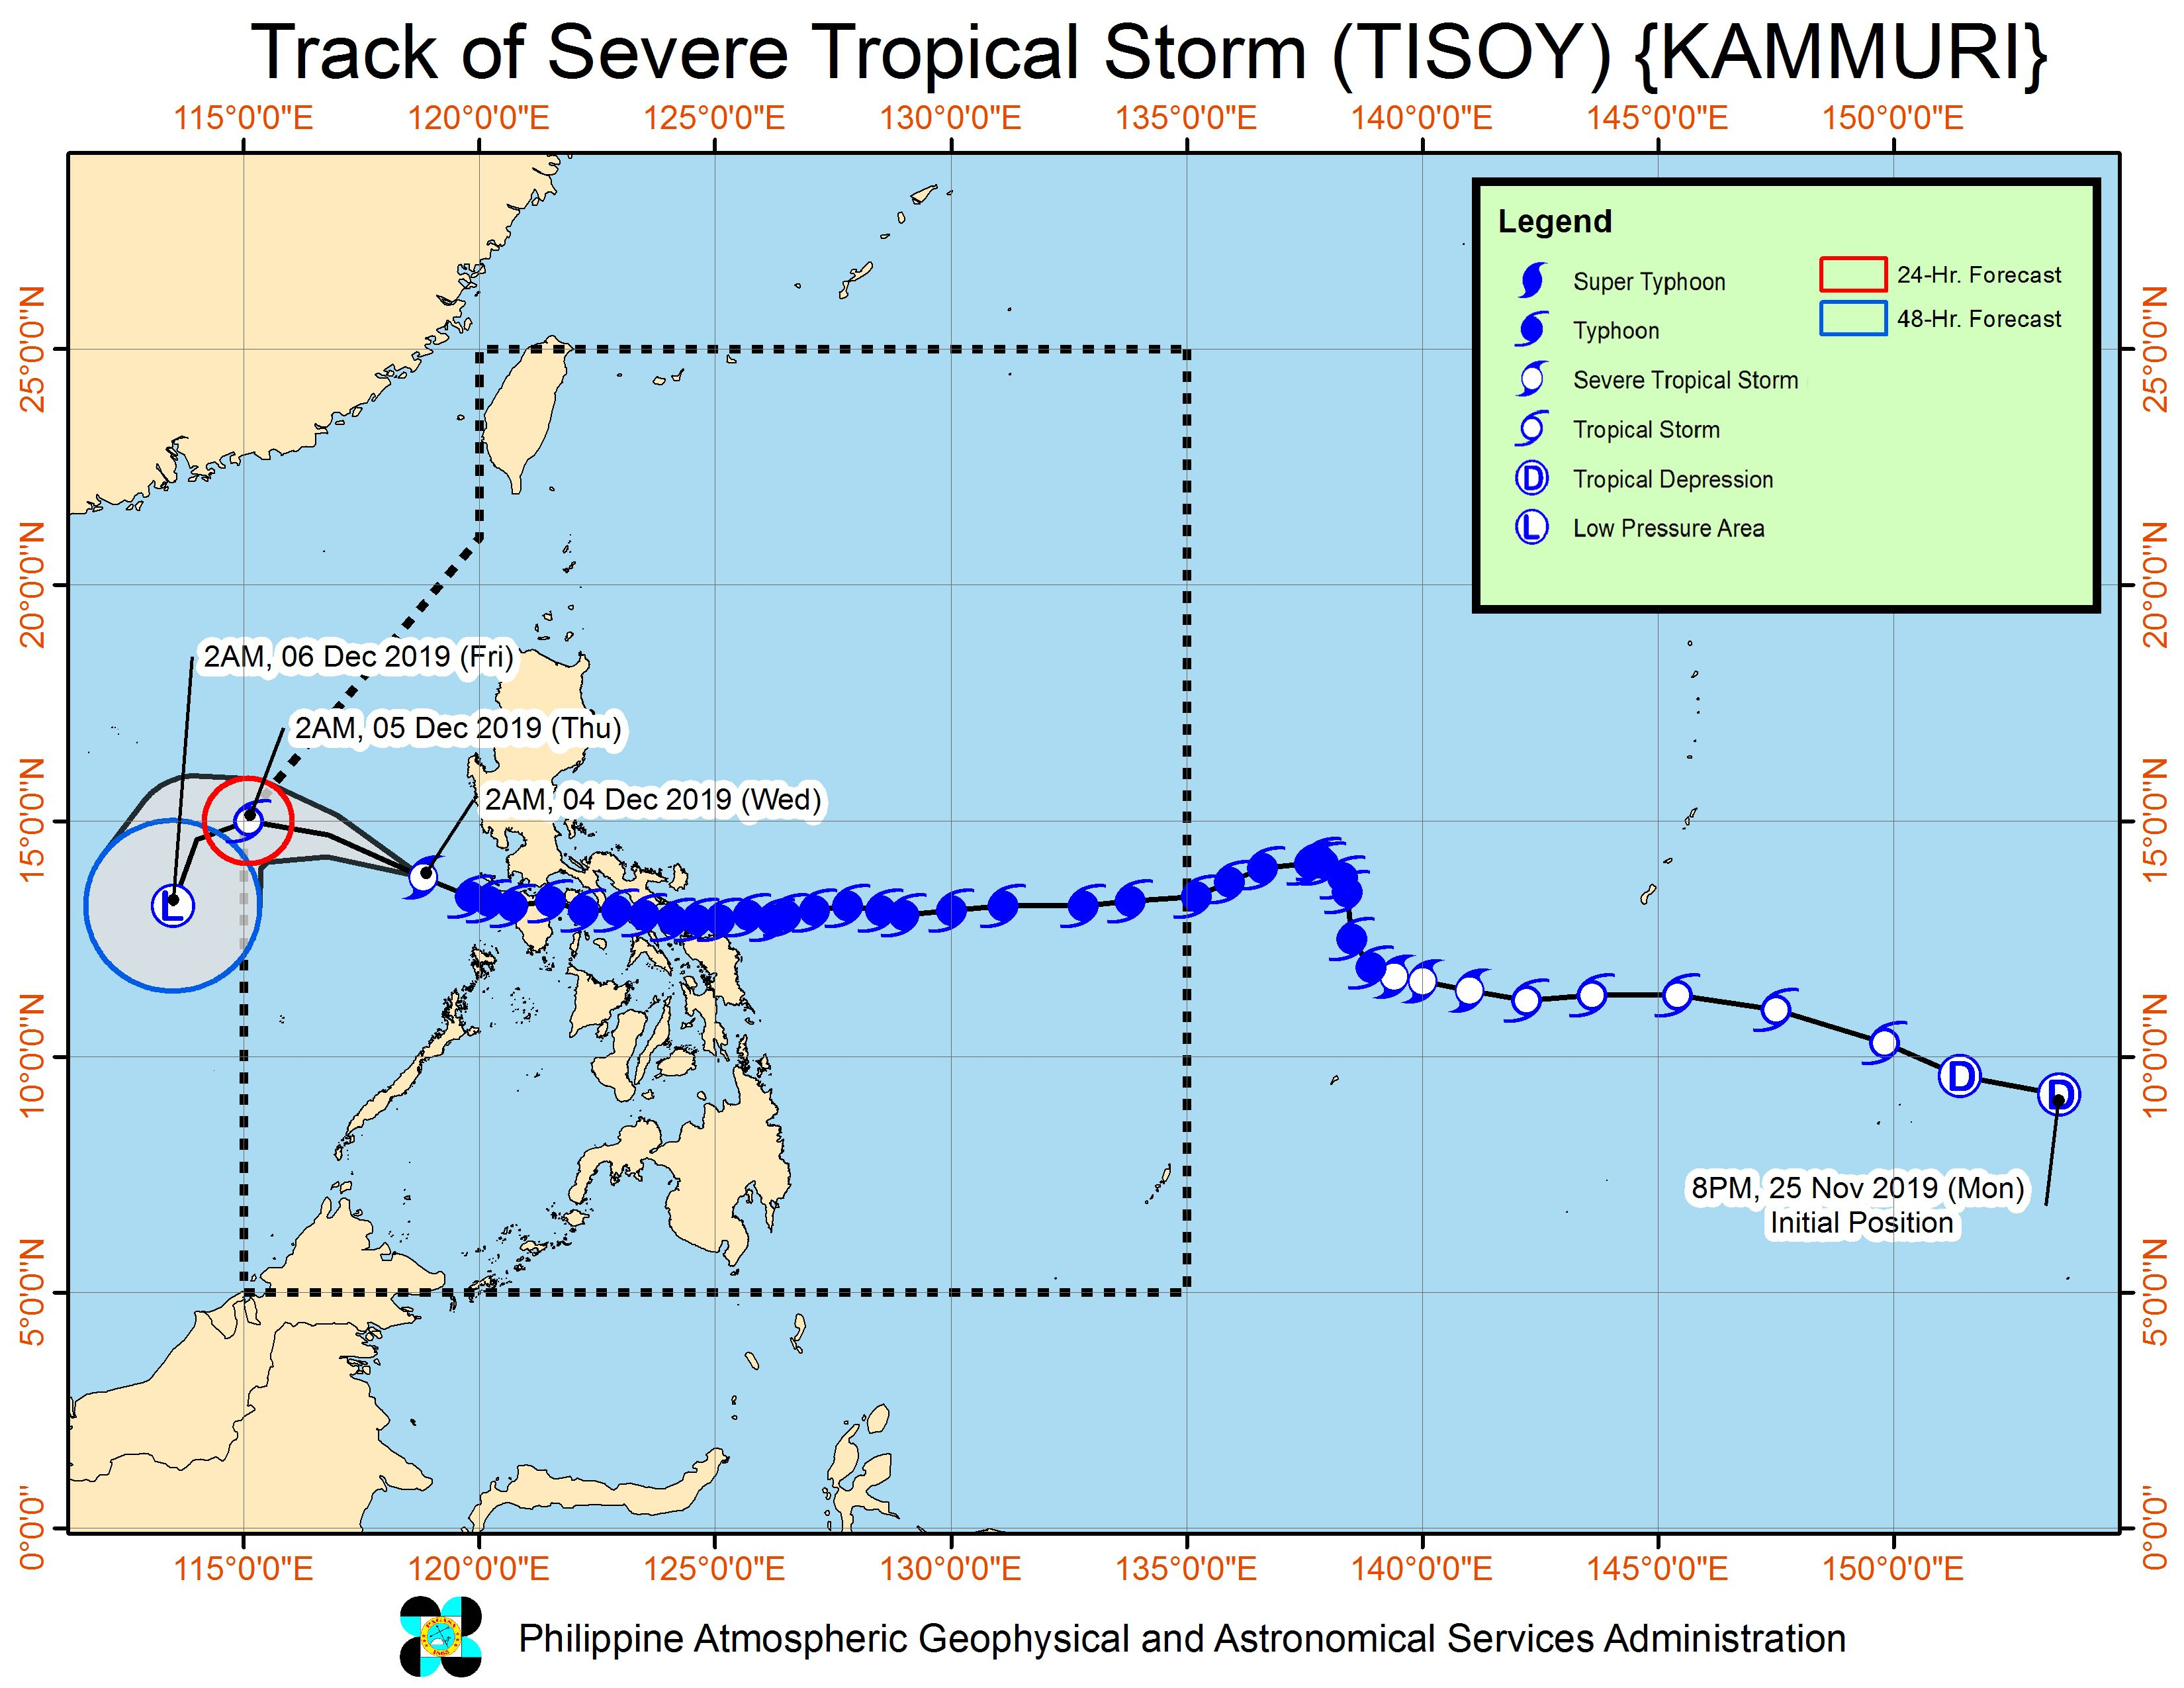 Forecast track of Severe Tropical Storm Tisoy (Kammuri) as of December 4, 2019, 5 am. Image from PAGASA